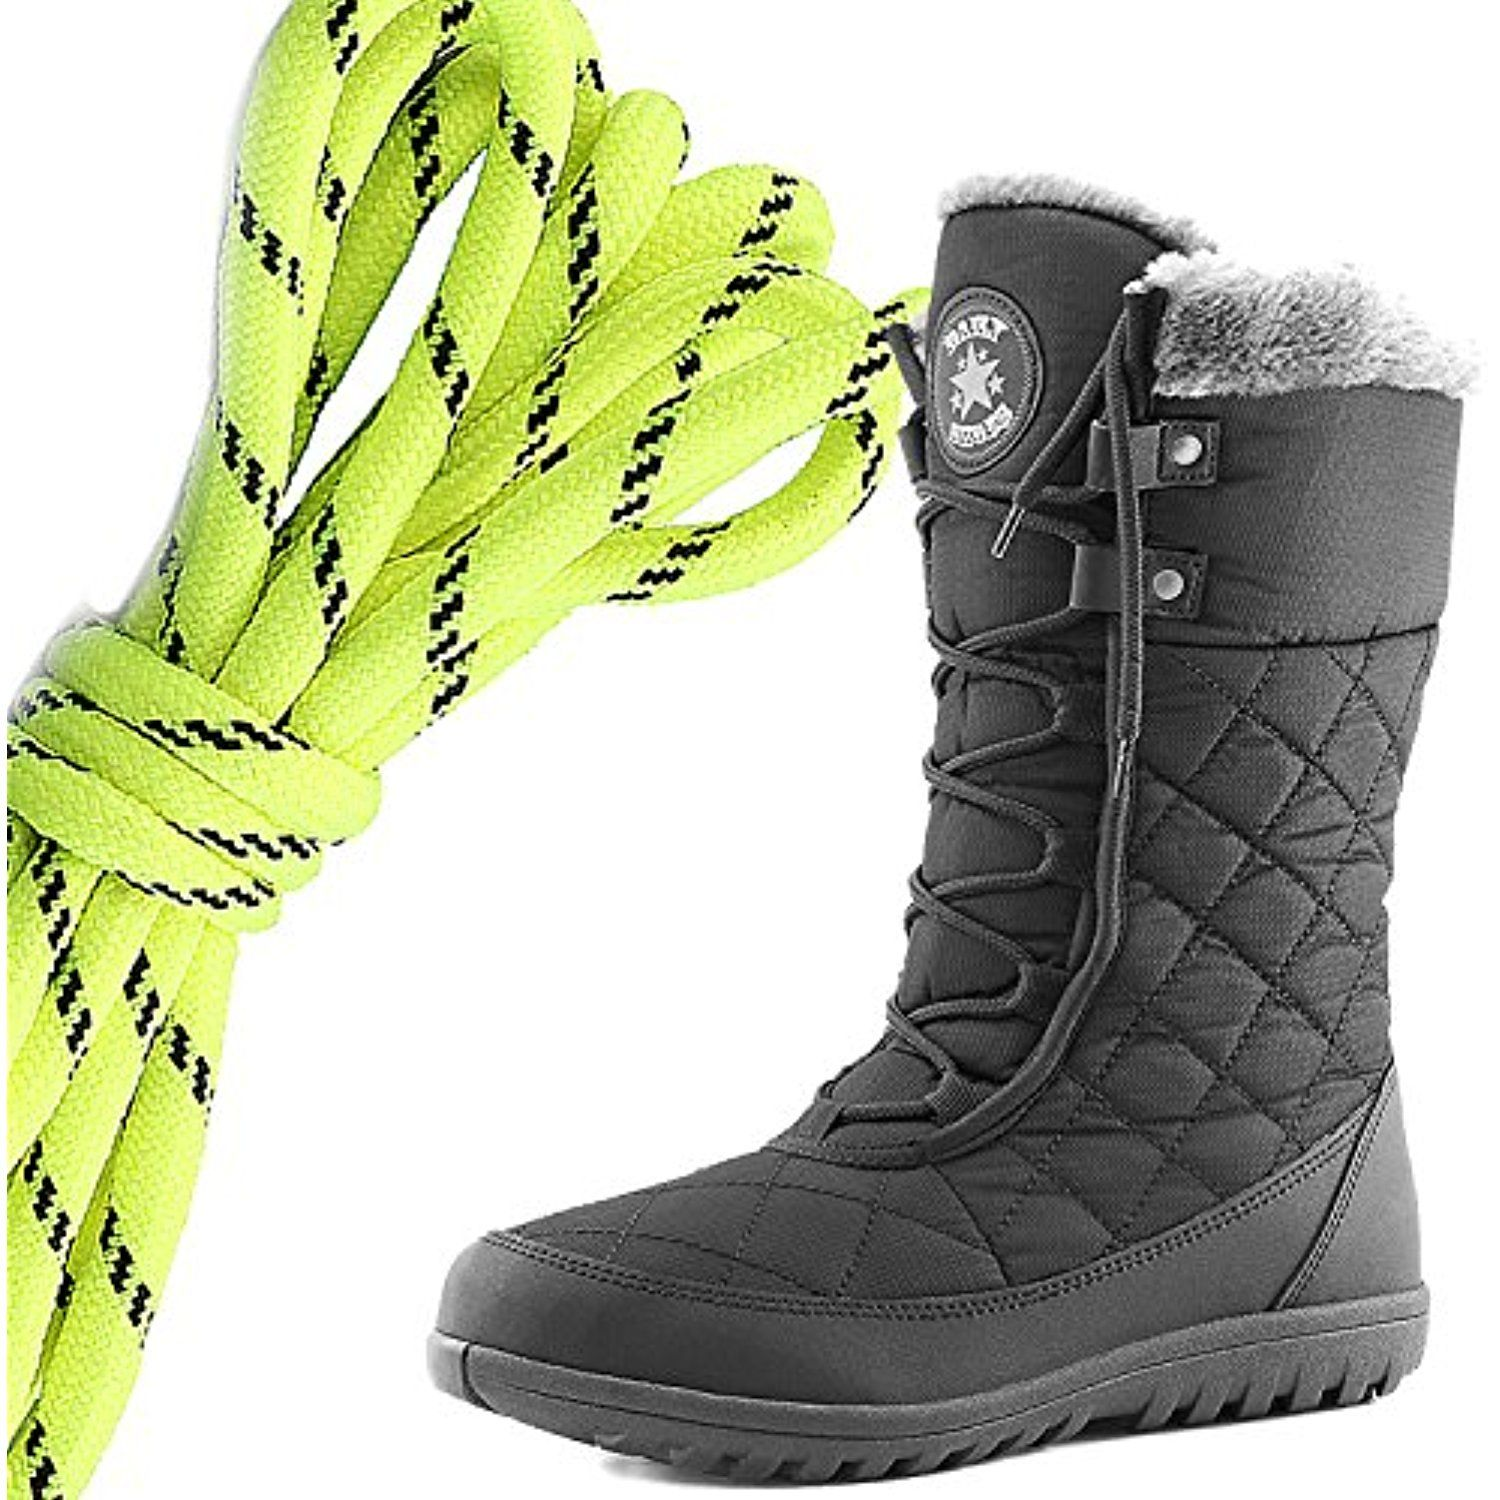 Women's Comfortable Round Toe Flat Ankle High Eskimo Winter Fur Snow Boots Neon Yellow Black